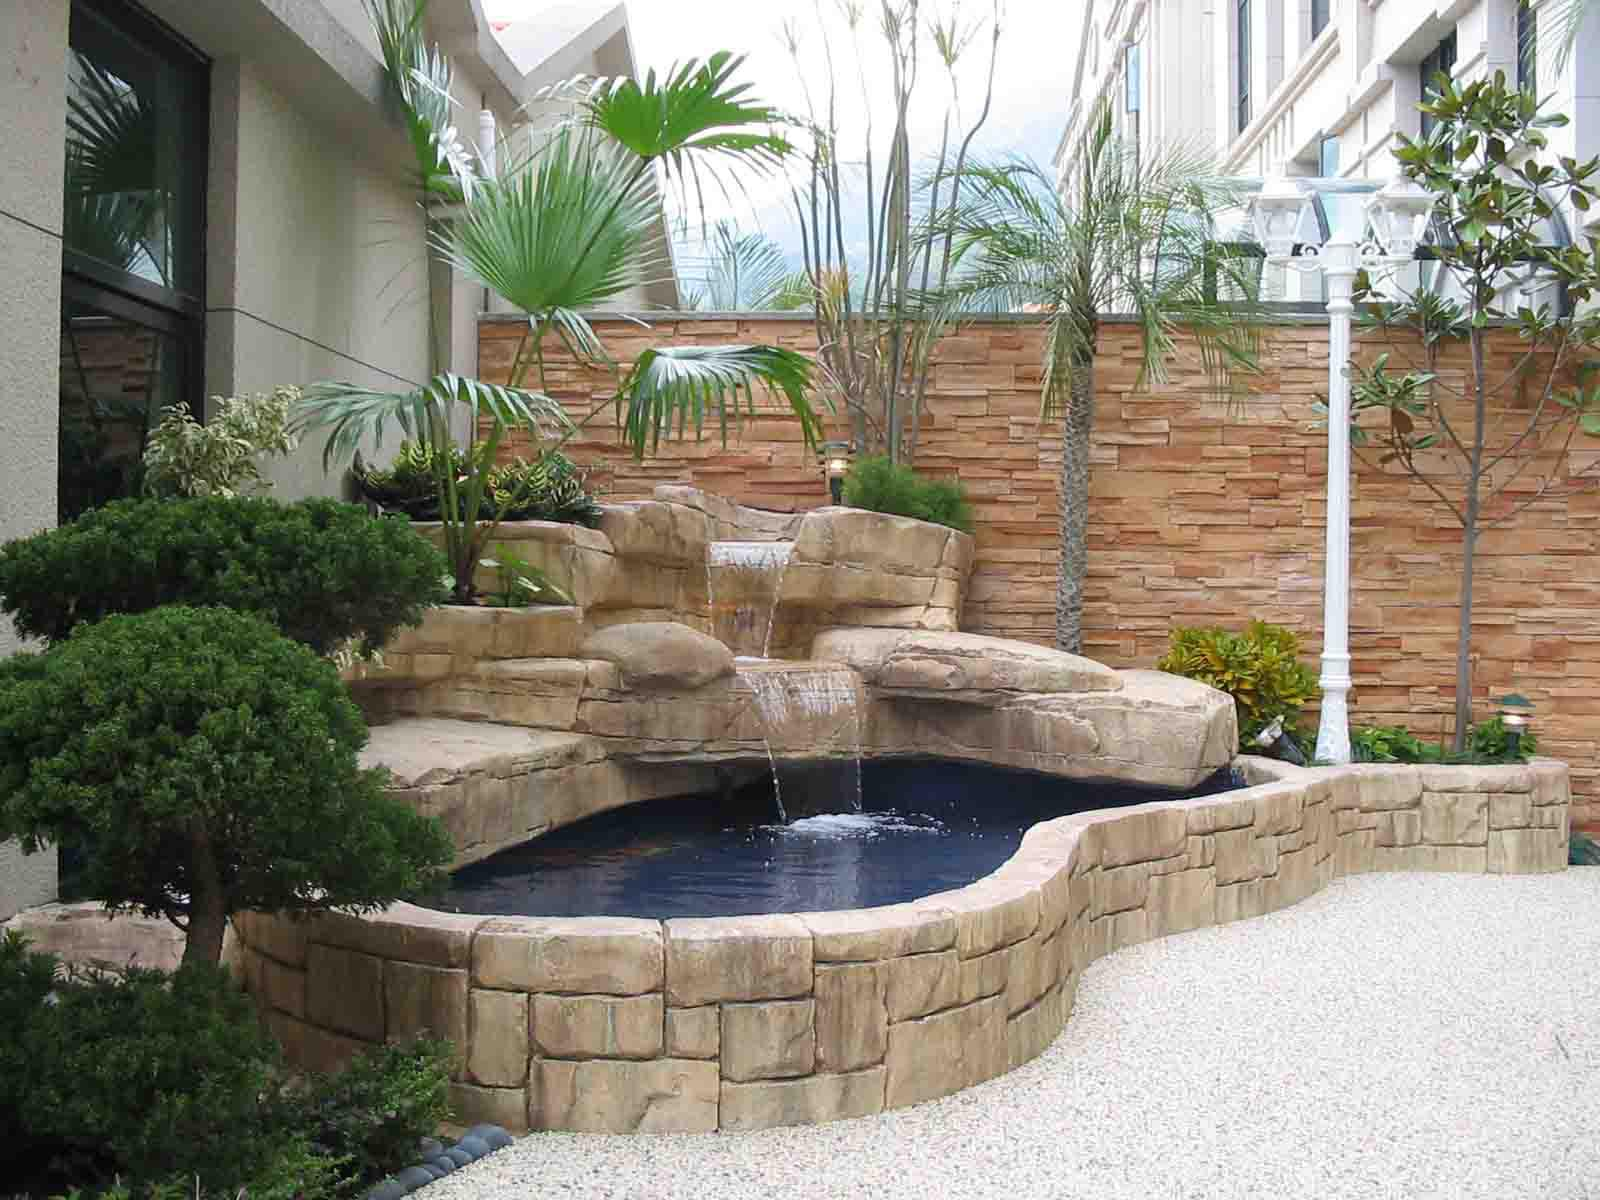 Fish pond garden design backyard design ideas for Fish pond landscape ideas